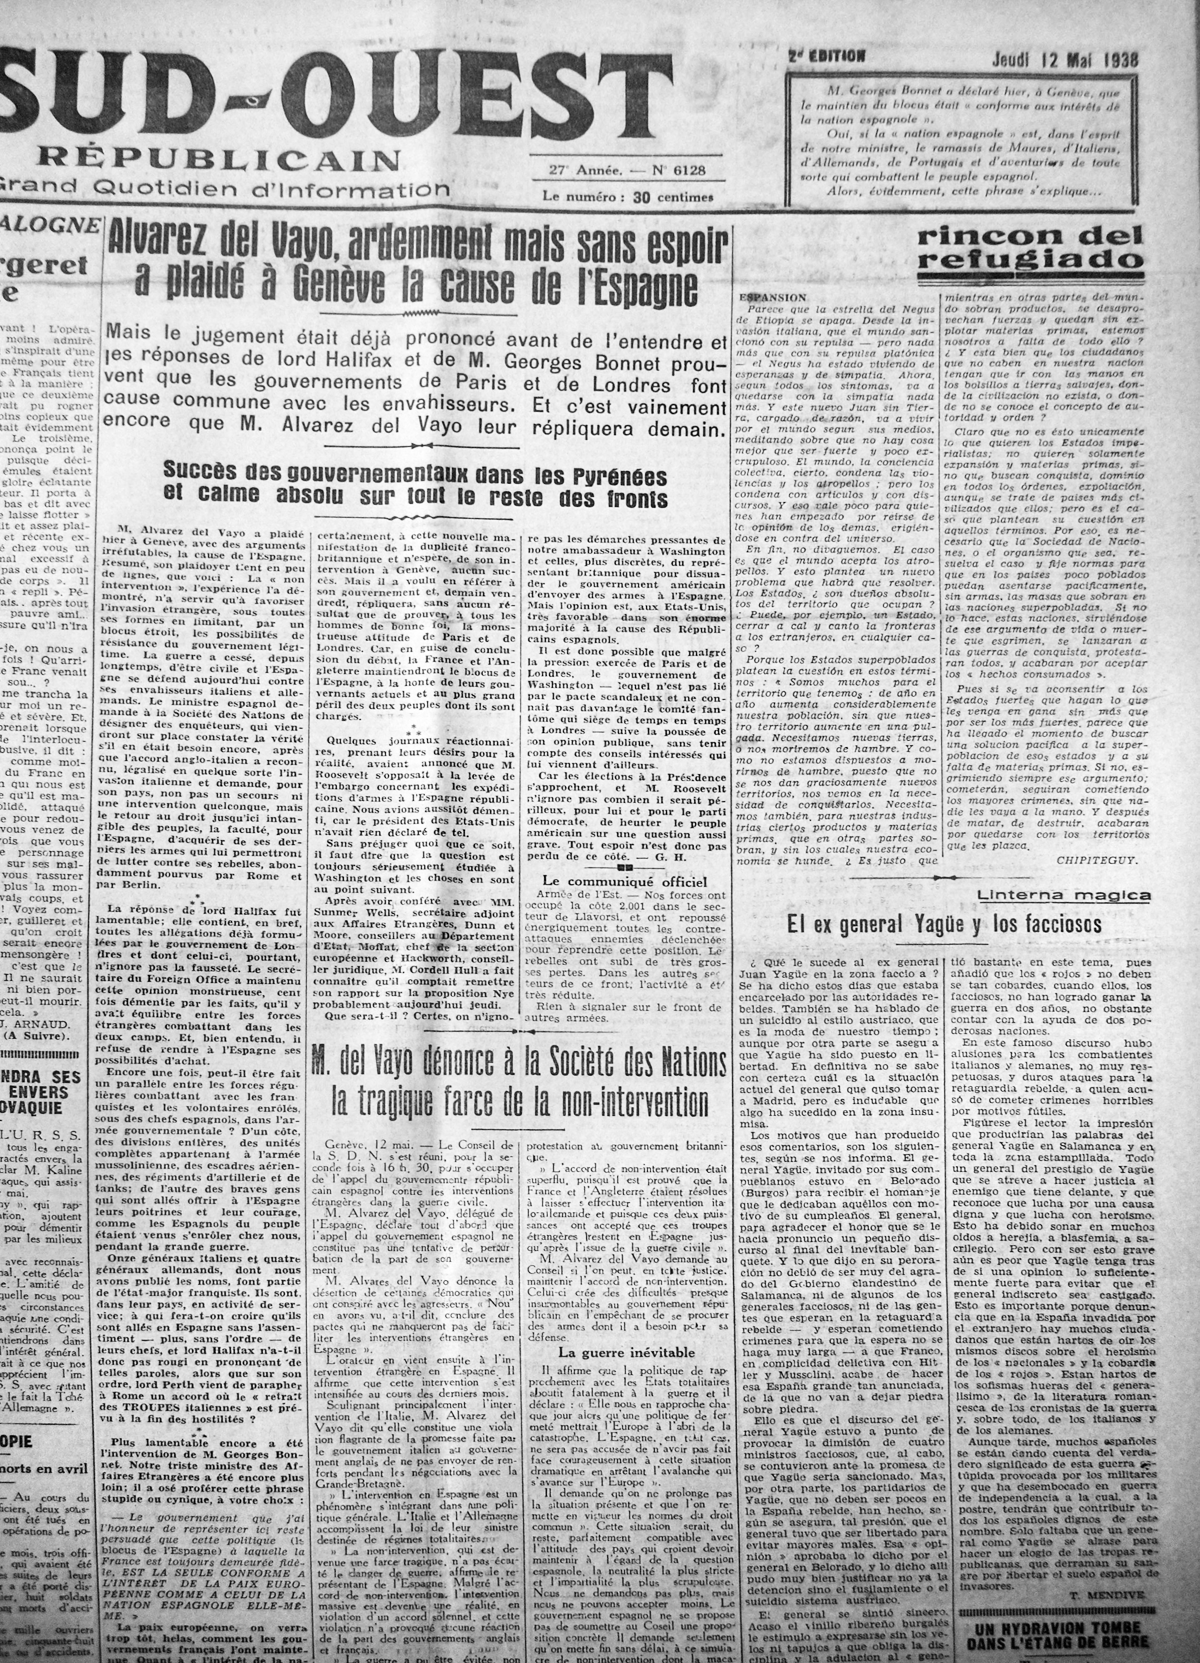 Sud-Ouest, 12 mayo 1938